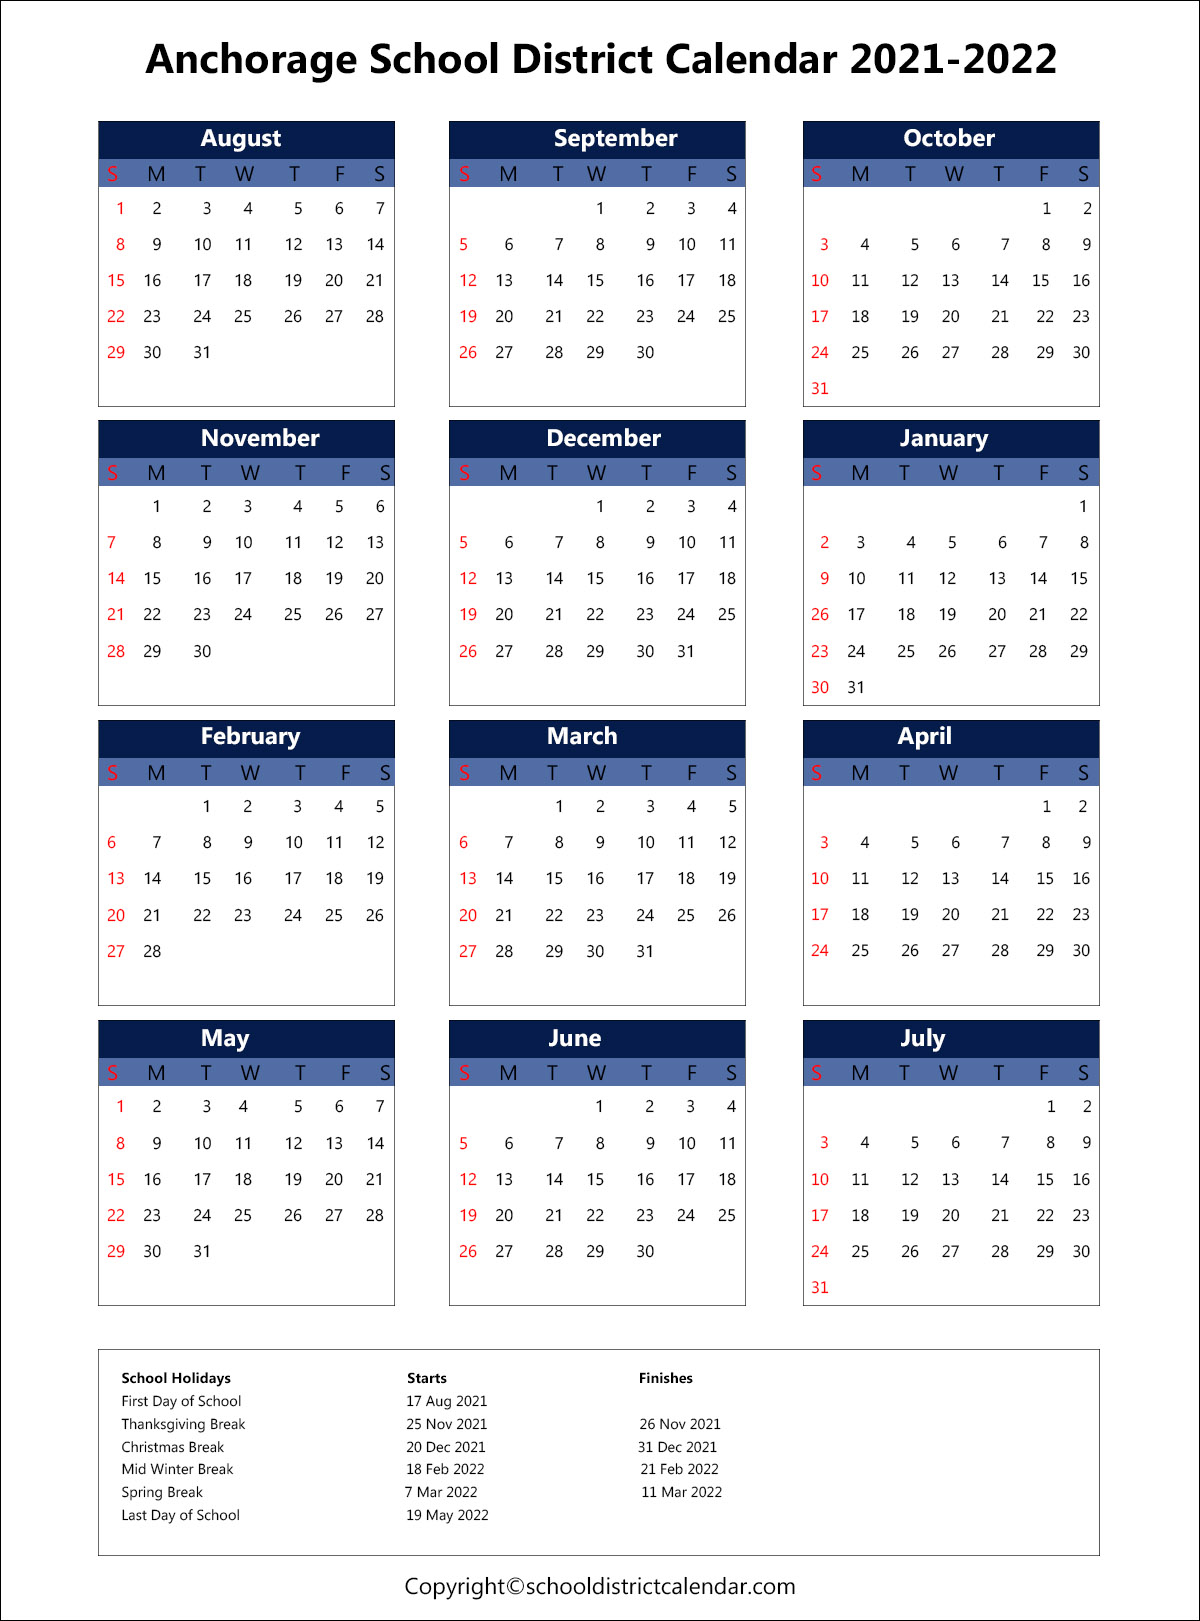 Anchorage School District Calendar 2021